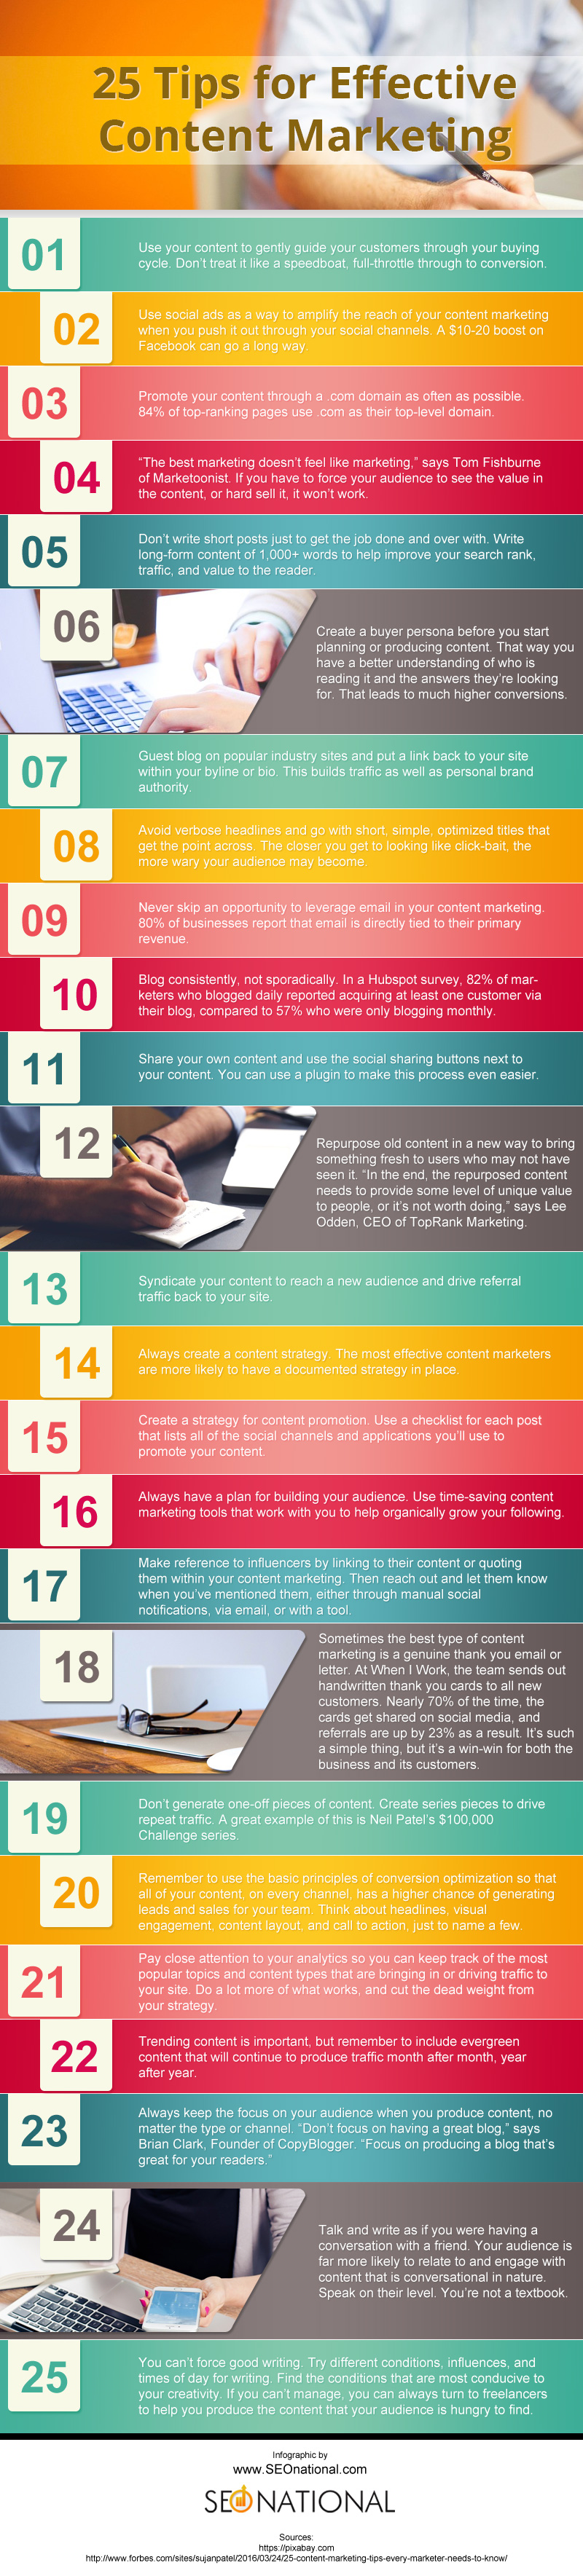 Tips for Effective Content Marketing